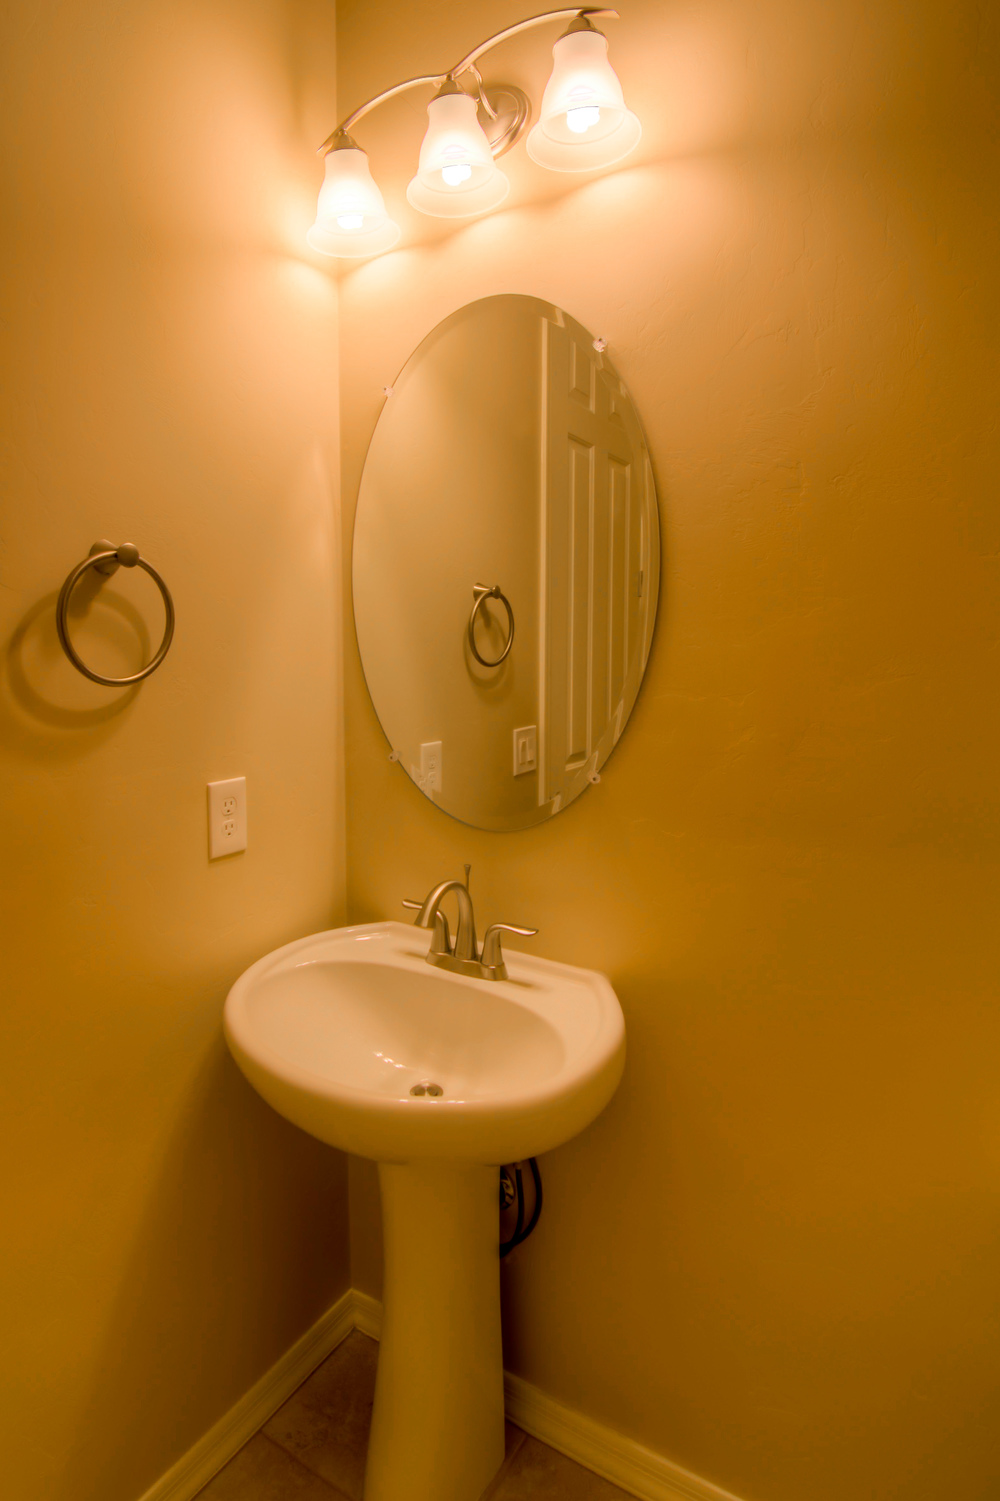 8 Downstairs Bathroom.jpg